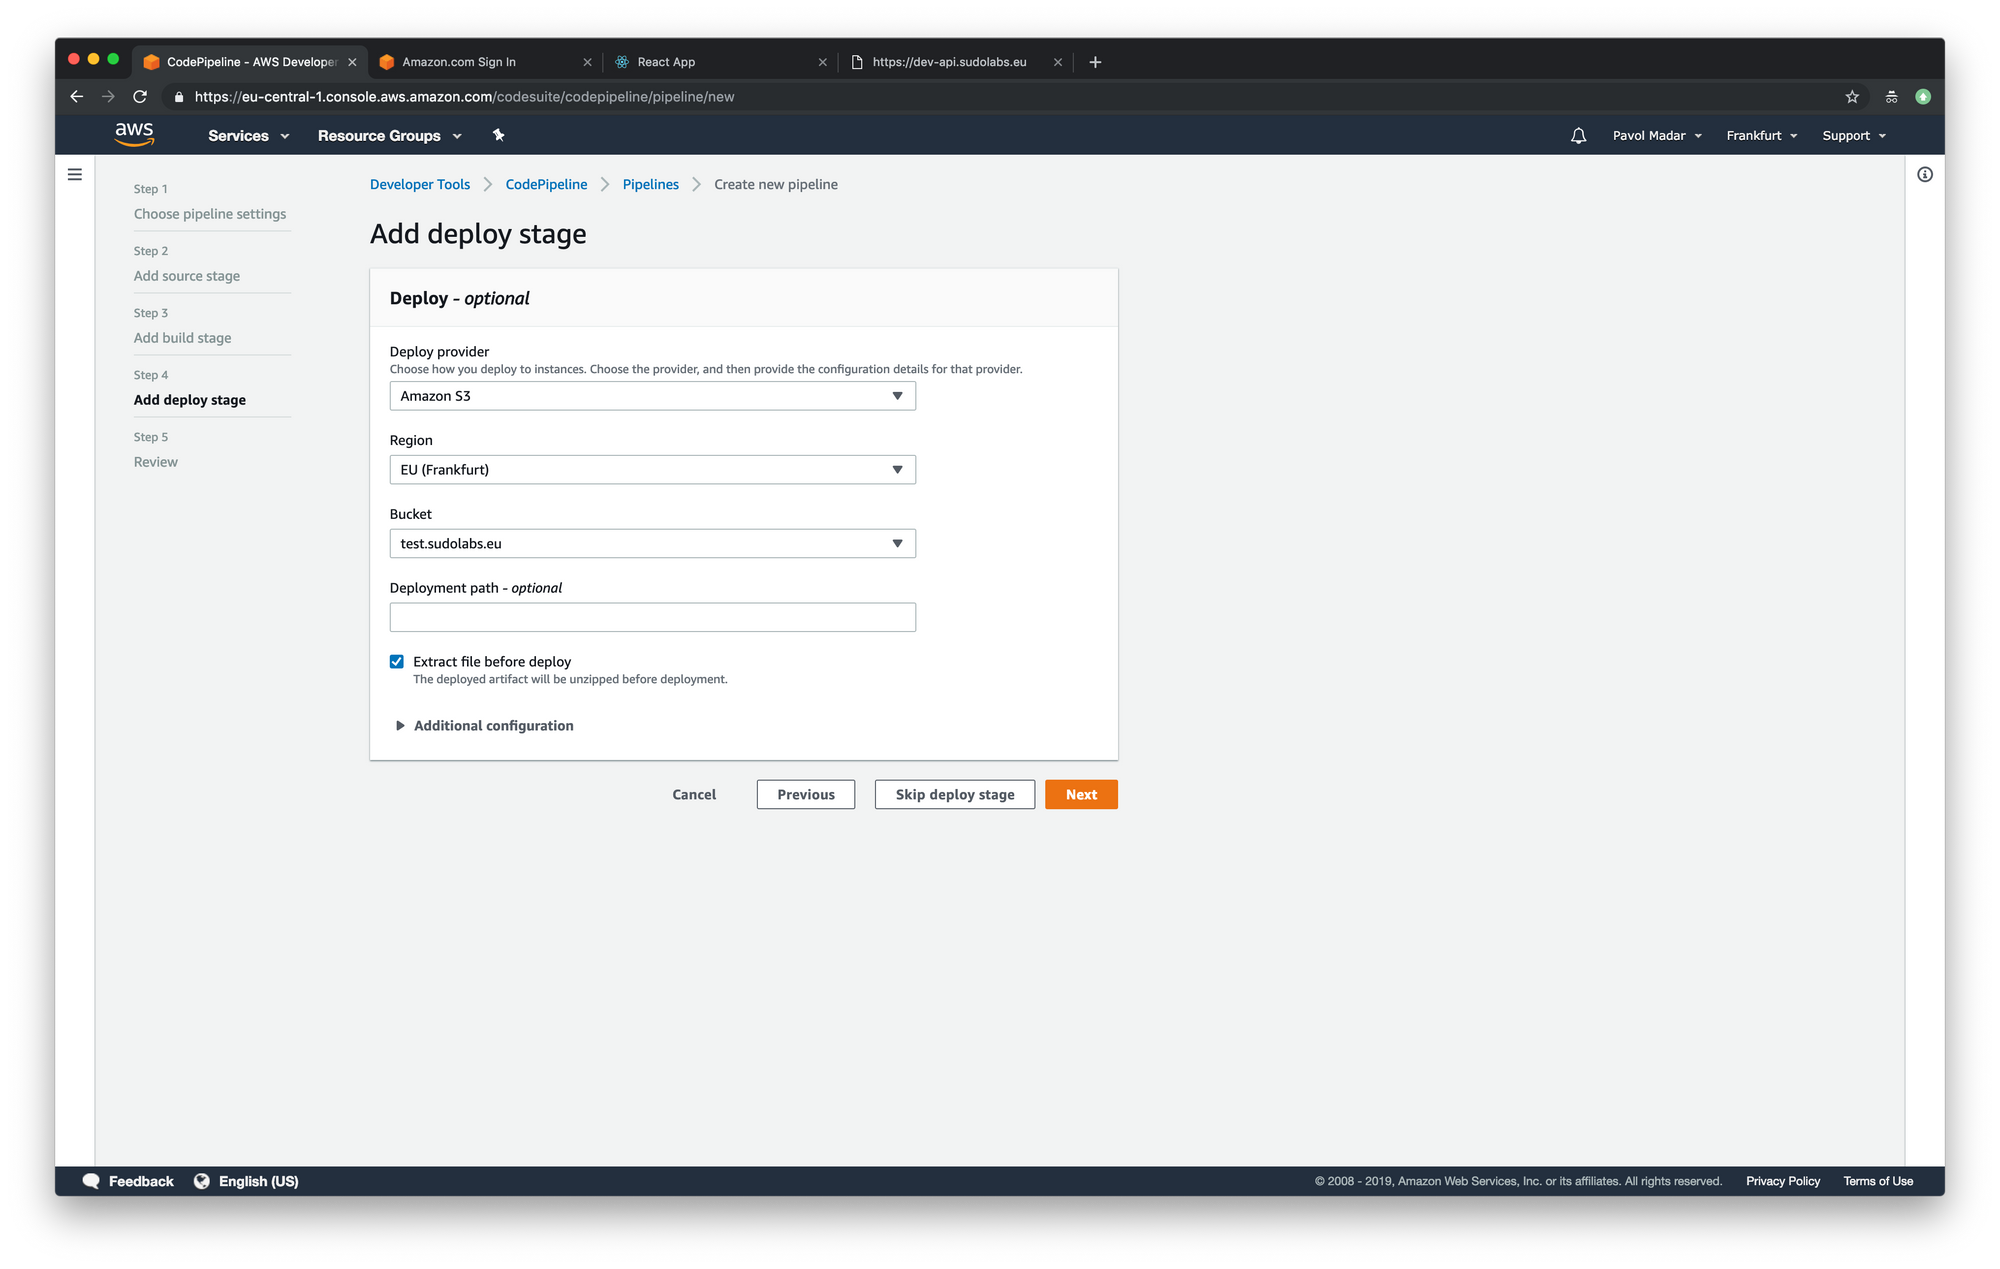 AWS CodePipeline - add deploy stage